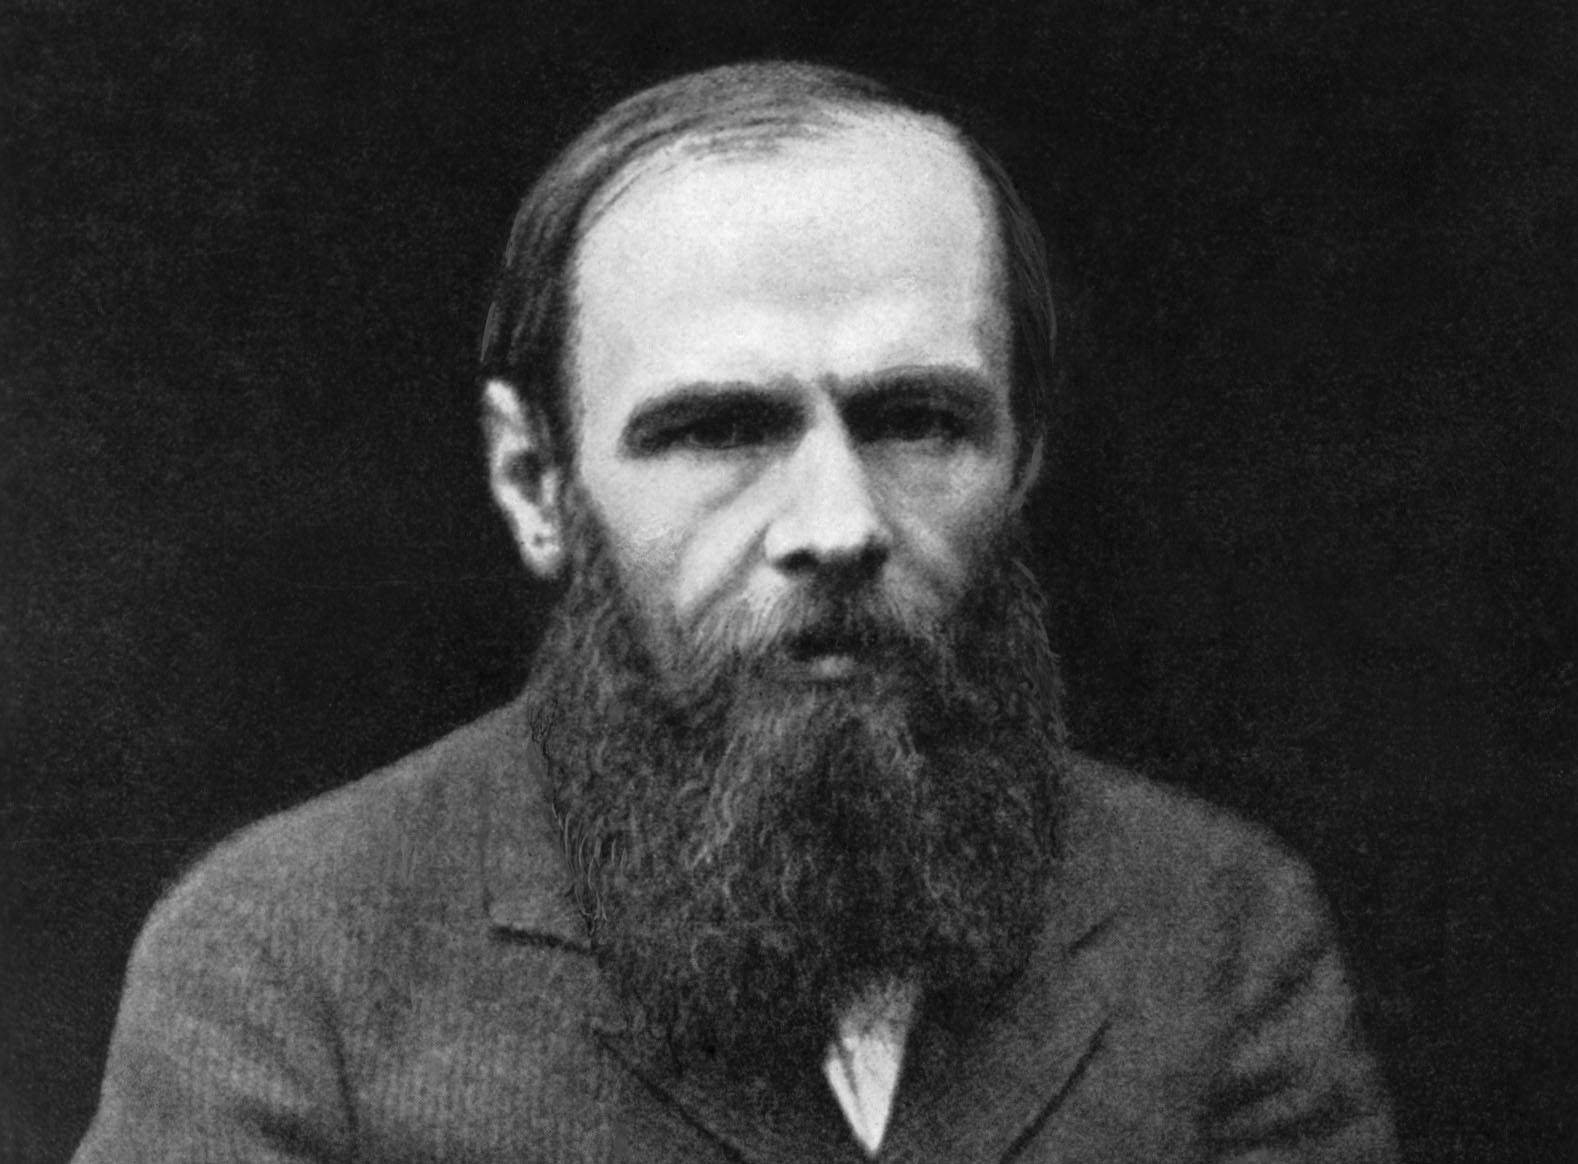 When was M.Dostoyevsky born